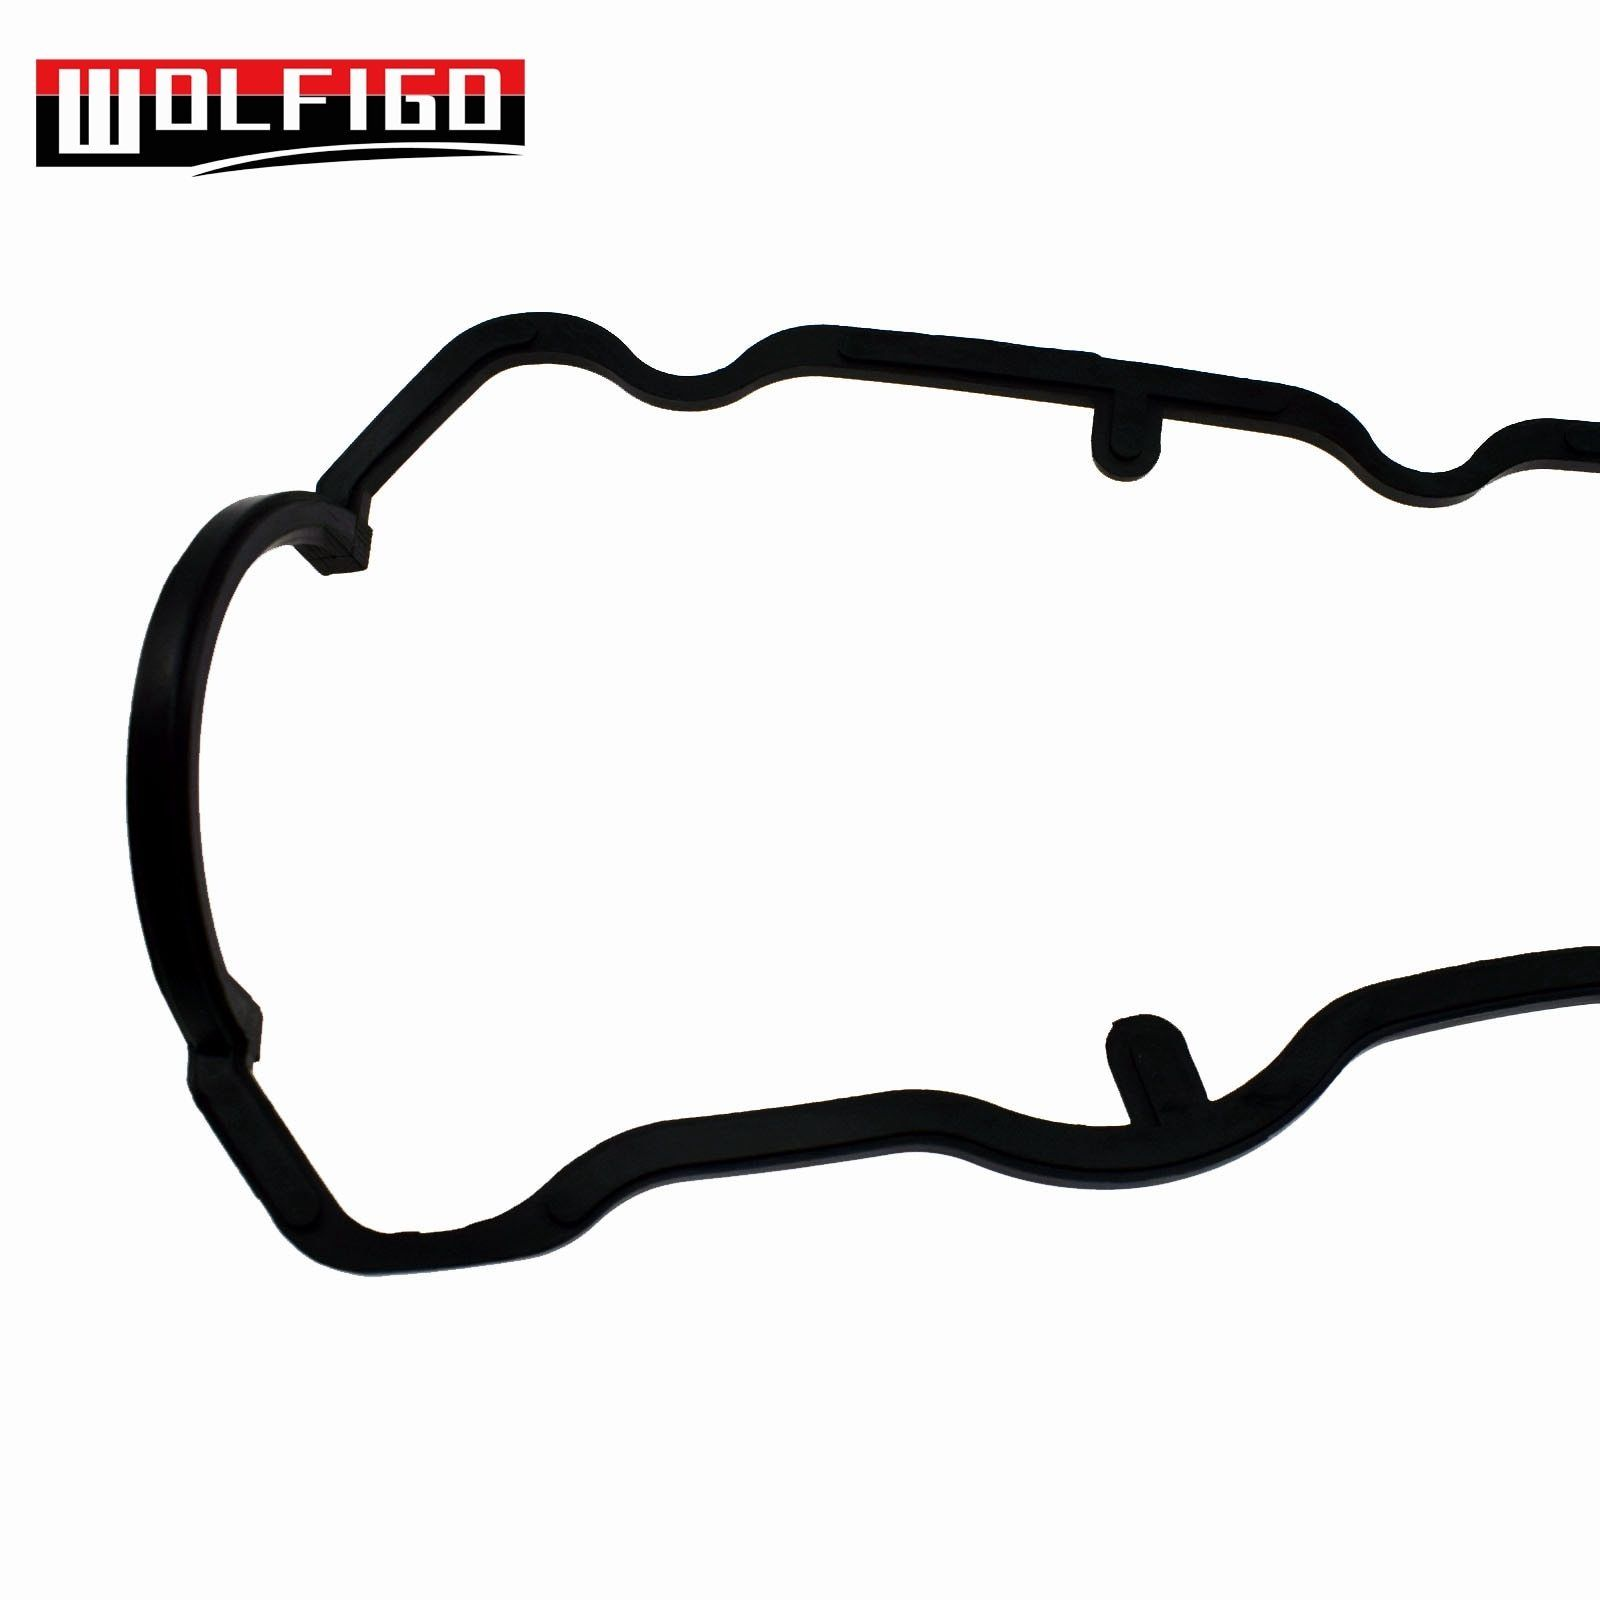 small resolution of wolfigo for vw beetle golf jetta tdi 1 9 engine valve cowl gasket 038103469e 038 103 469 e new